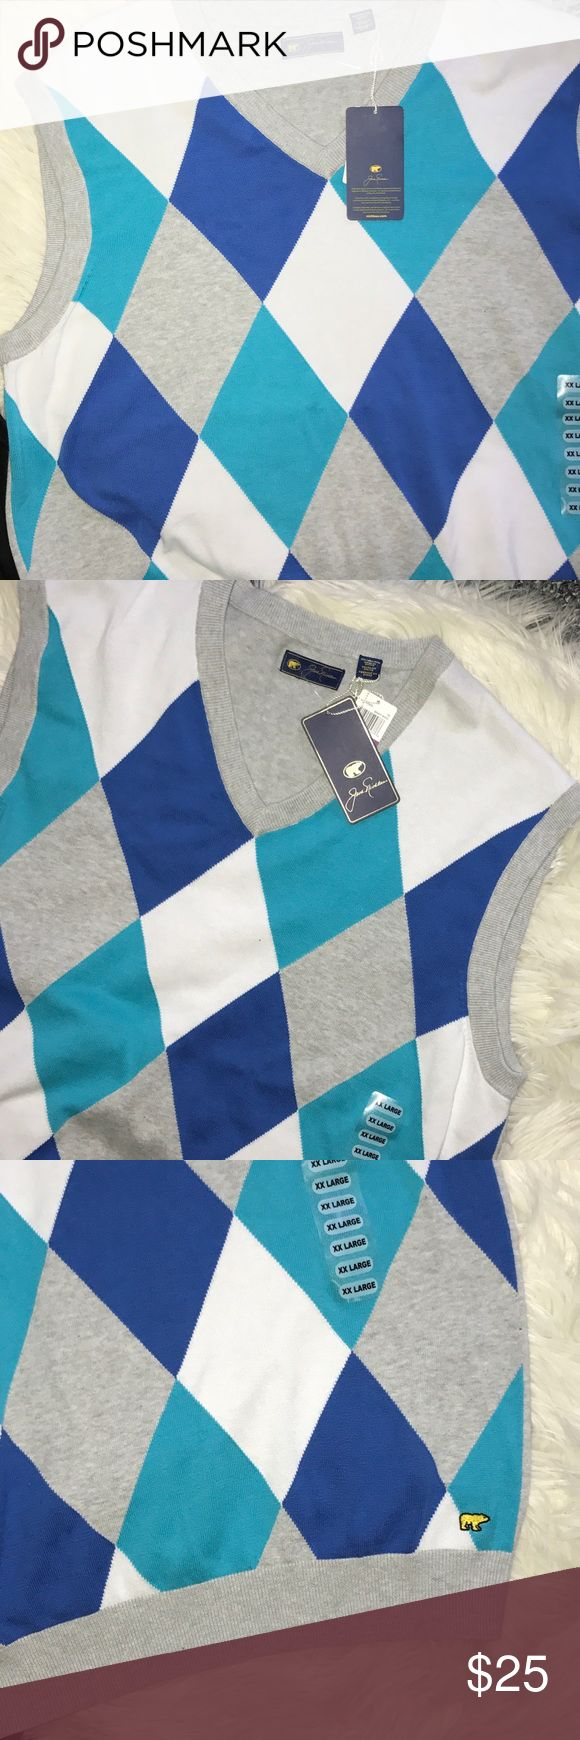 """NWT Jack Nicklaus Men's Argyle Golf Sweater Vest New with tags.  Jack Nicklaus golf sweater vest, size 2XL.  Solid Gray back.   Gray, white, Turquoise blue and Columbia blue argyle front.  V-neck.  100% cotton.  Pit to pit laying flat 25"""", length 28"""". Jack Nicklaus Sweaters"""